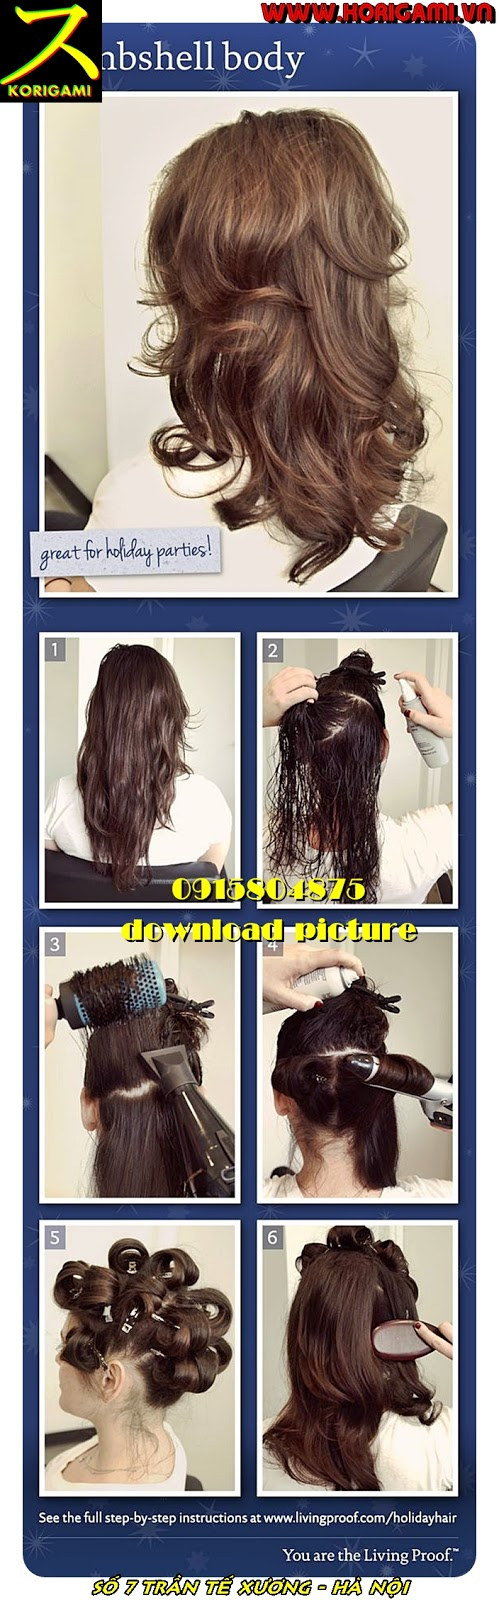 PERFECT BLOW OUT DRY WOMEN HAIR STYLES IN HANOI KORIGAMI SALON